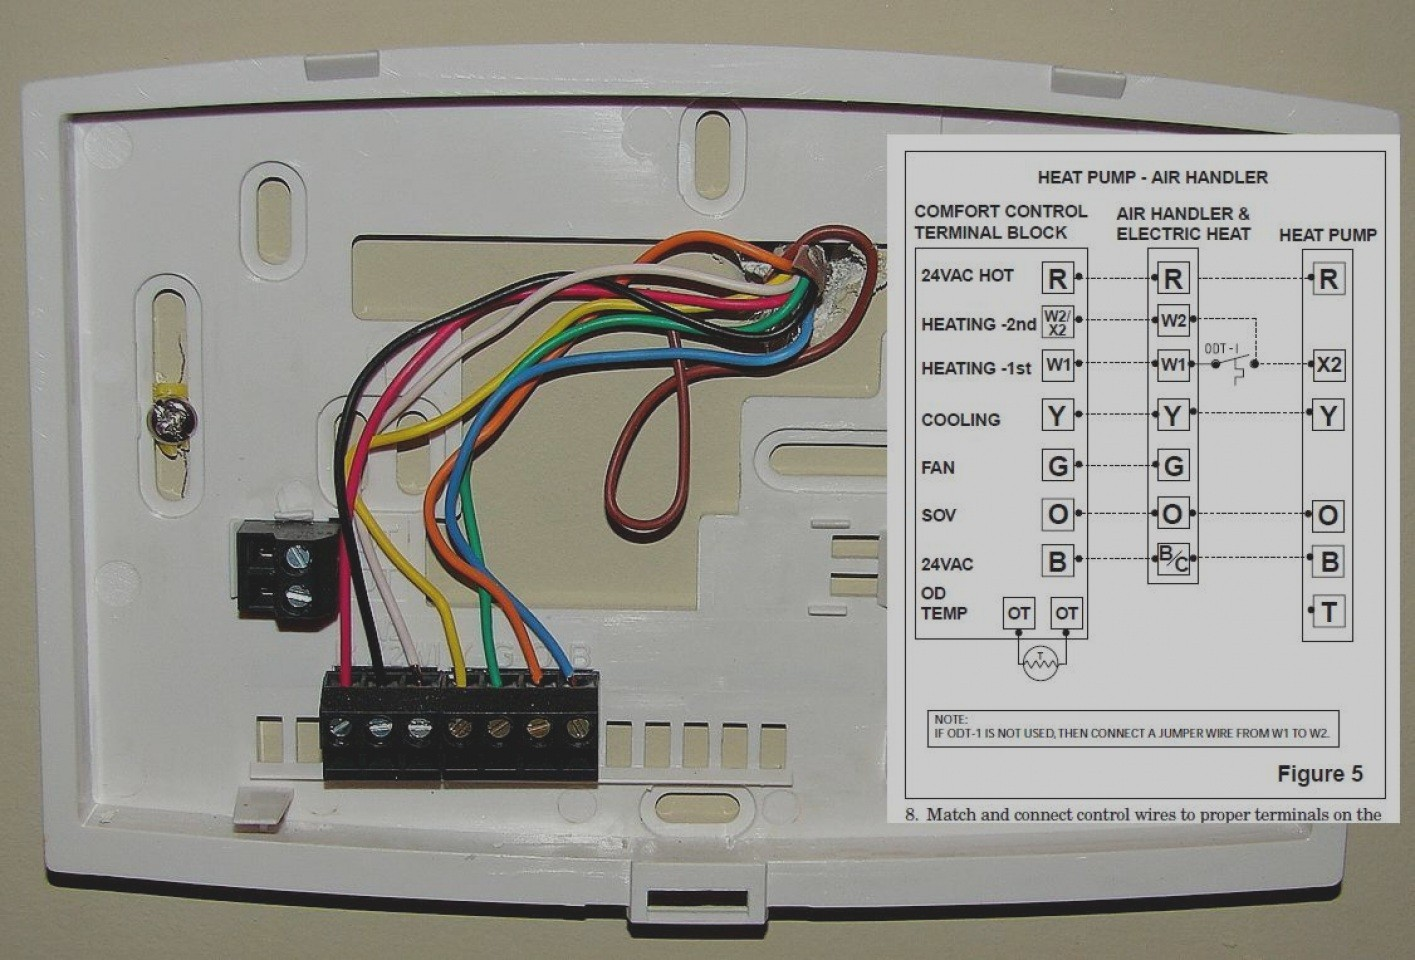 Honeywell Th5220d1003 Wiring Diagram 27 New Wiring Diagram for Honeywell  thermostat Th5220d1003 Collection